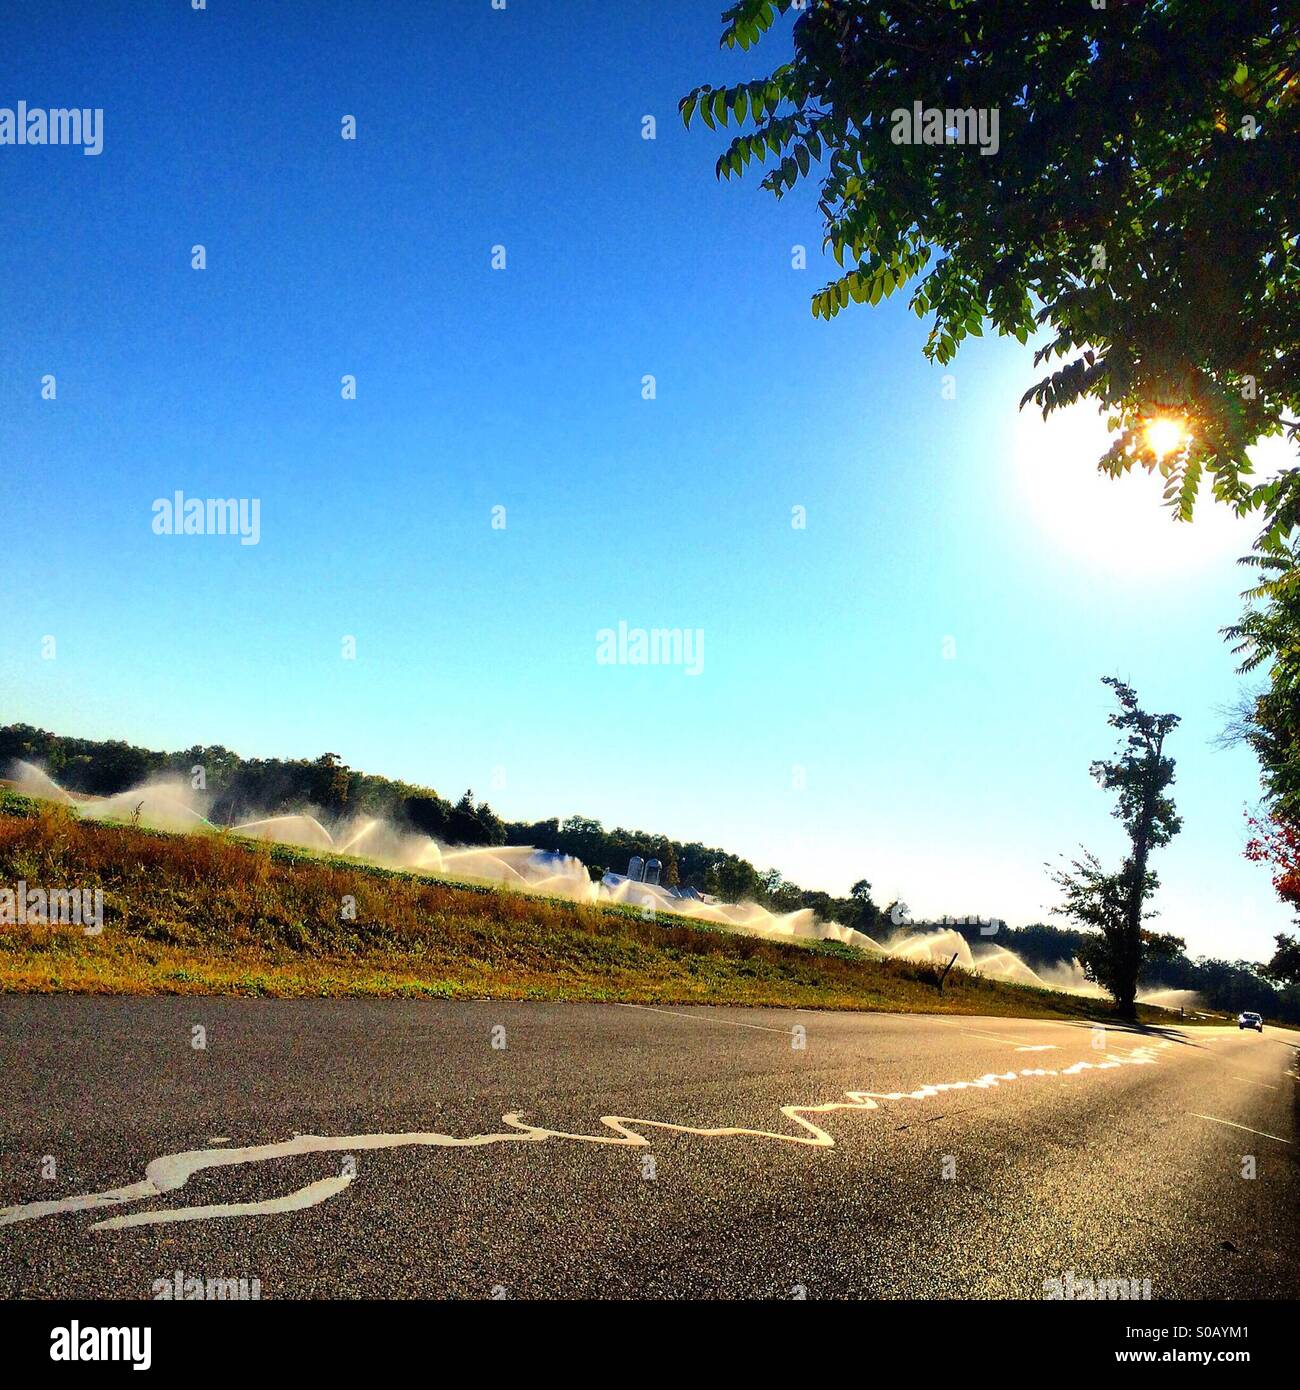 A country road runs alongside a field being irrigated by automatic sprinklers. - Stock Image